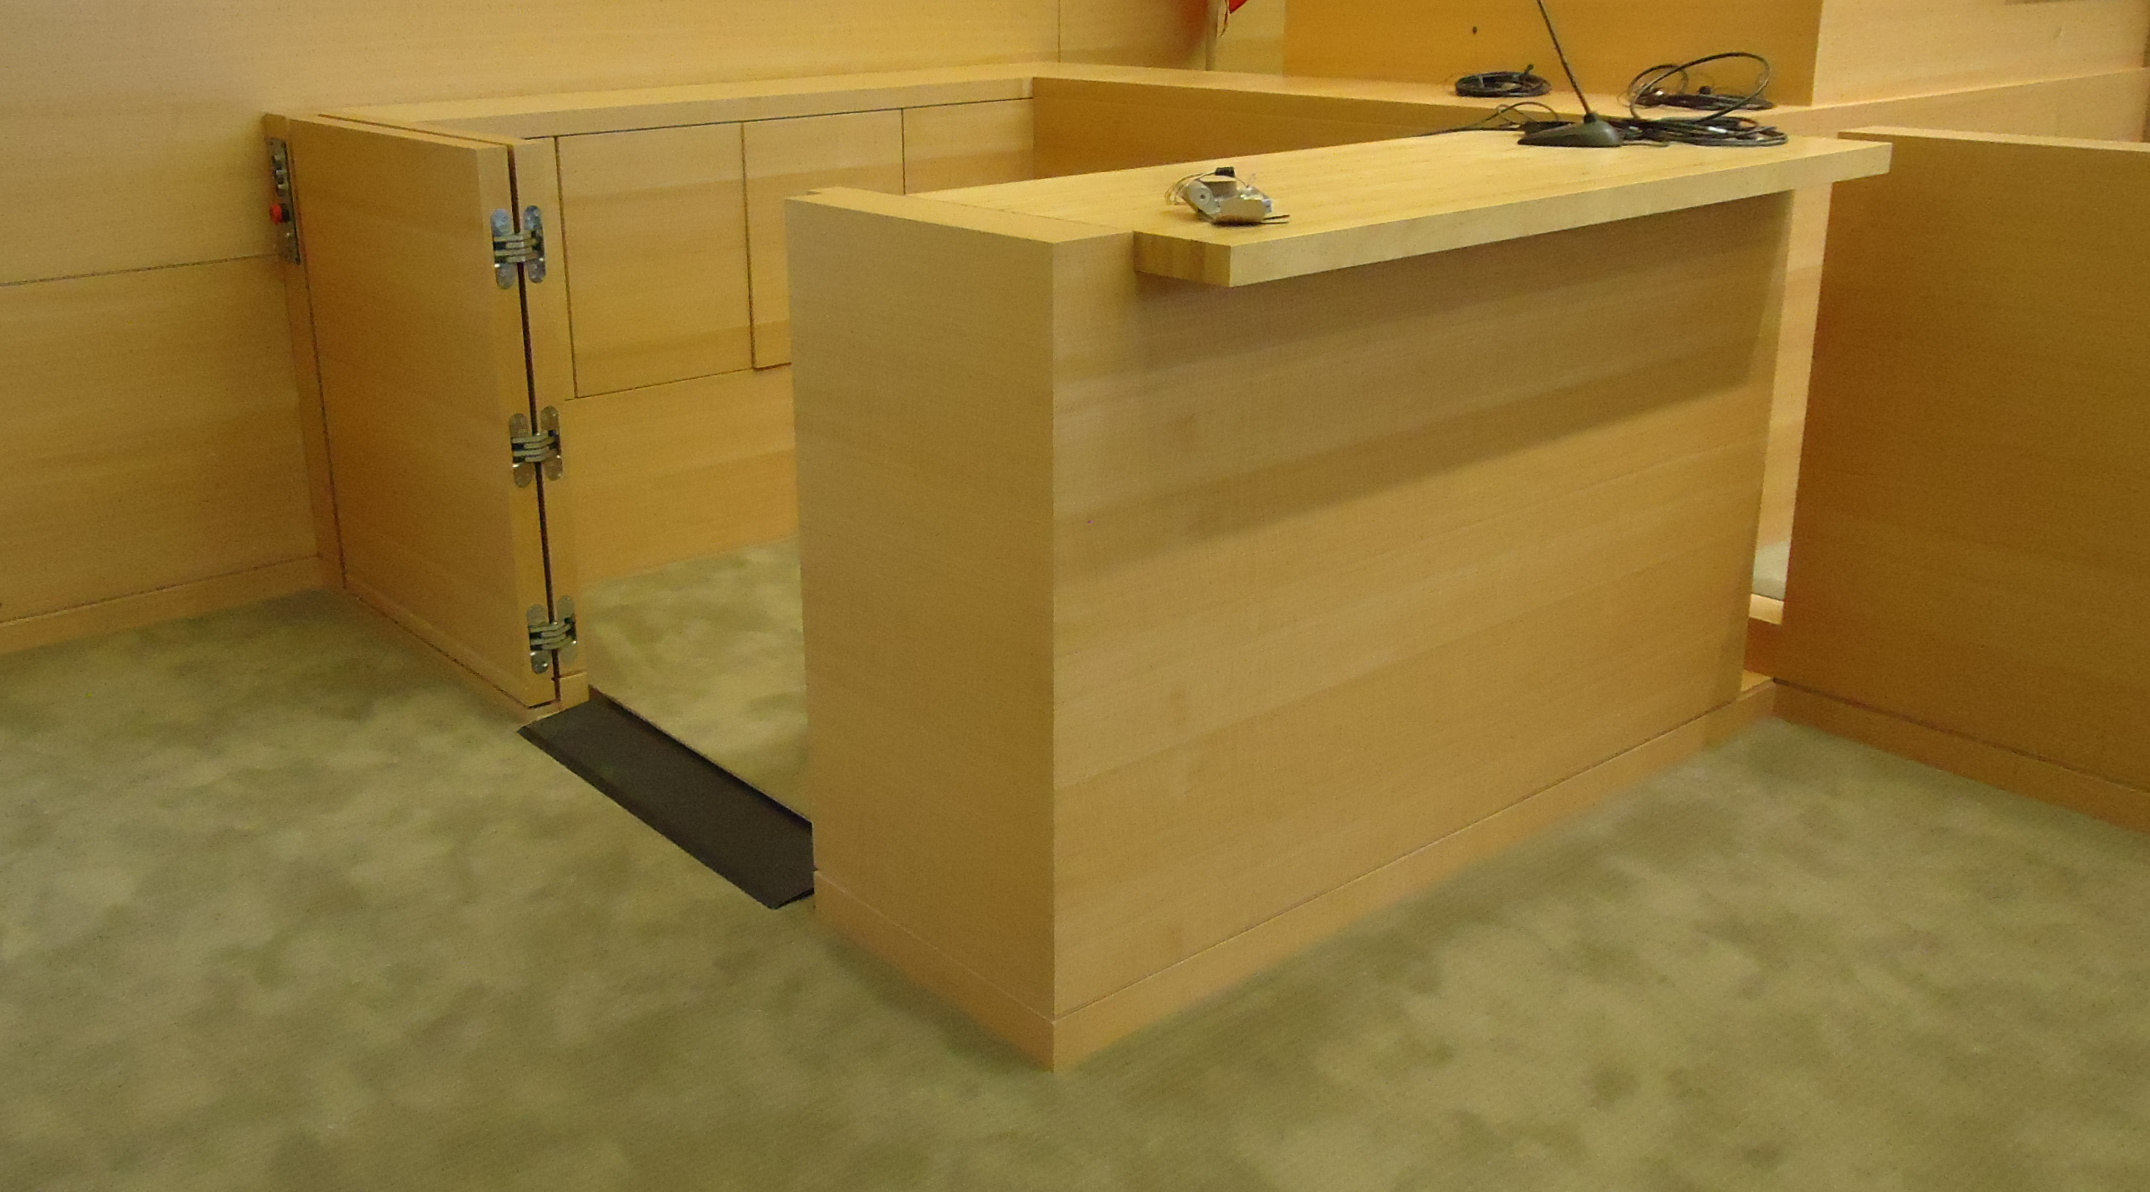 Witness lift positioned at lower level with lower level door opened. Equipped with threshold ramp to allow wheelchair access. Lift encased in wood millwork blending in with courtroom millwork. Lift is readily available and independently operable.